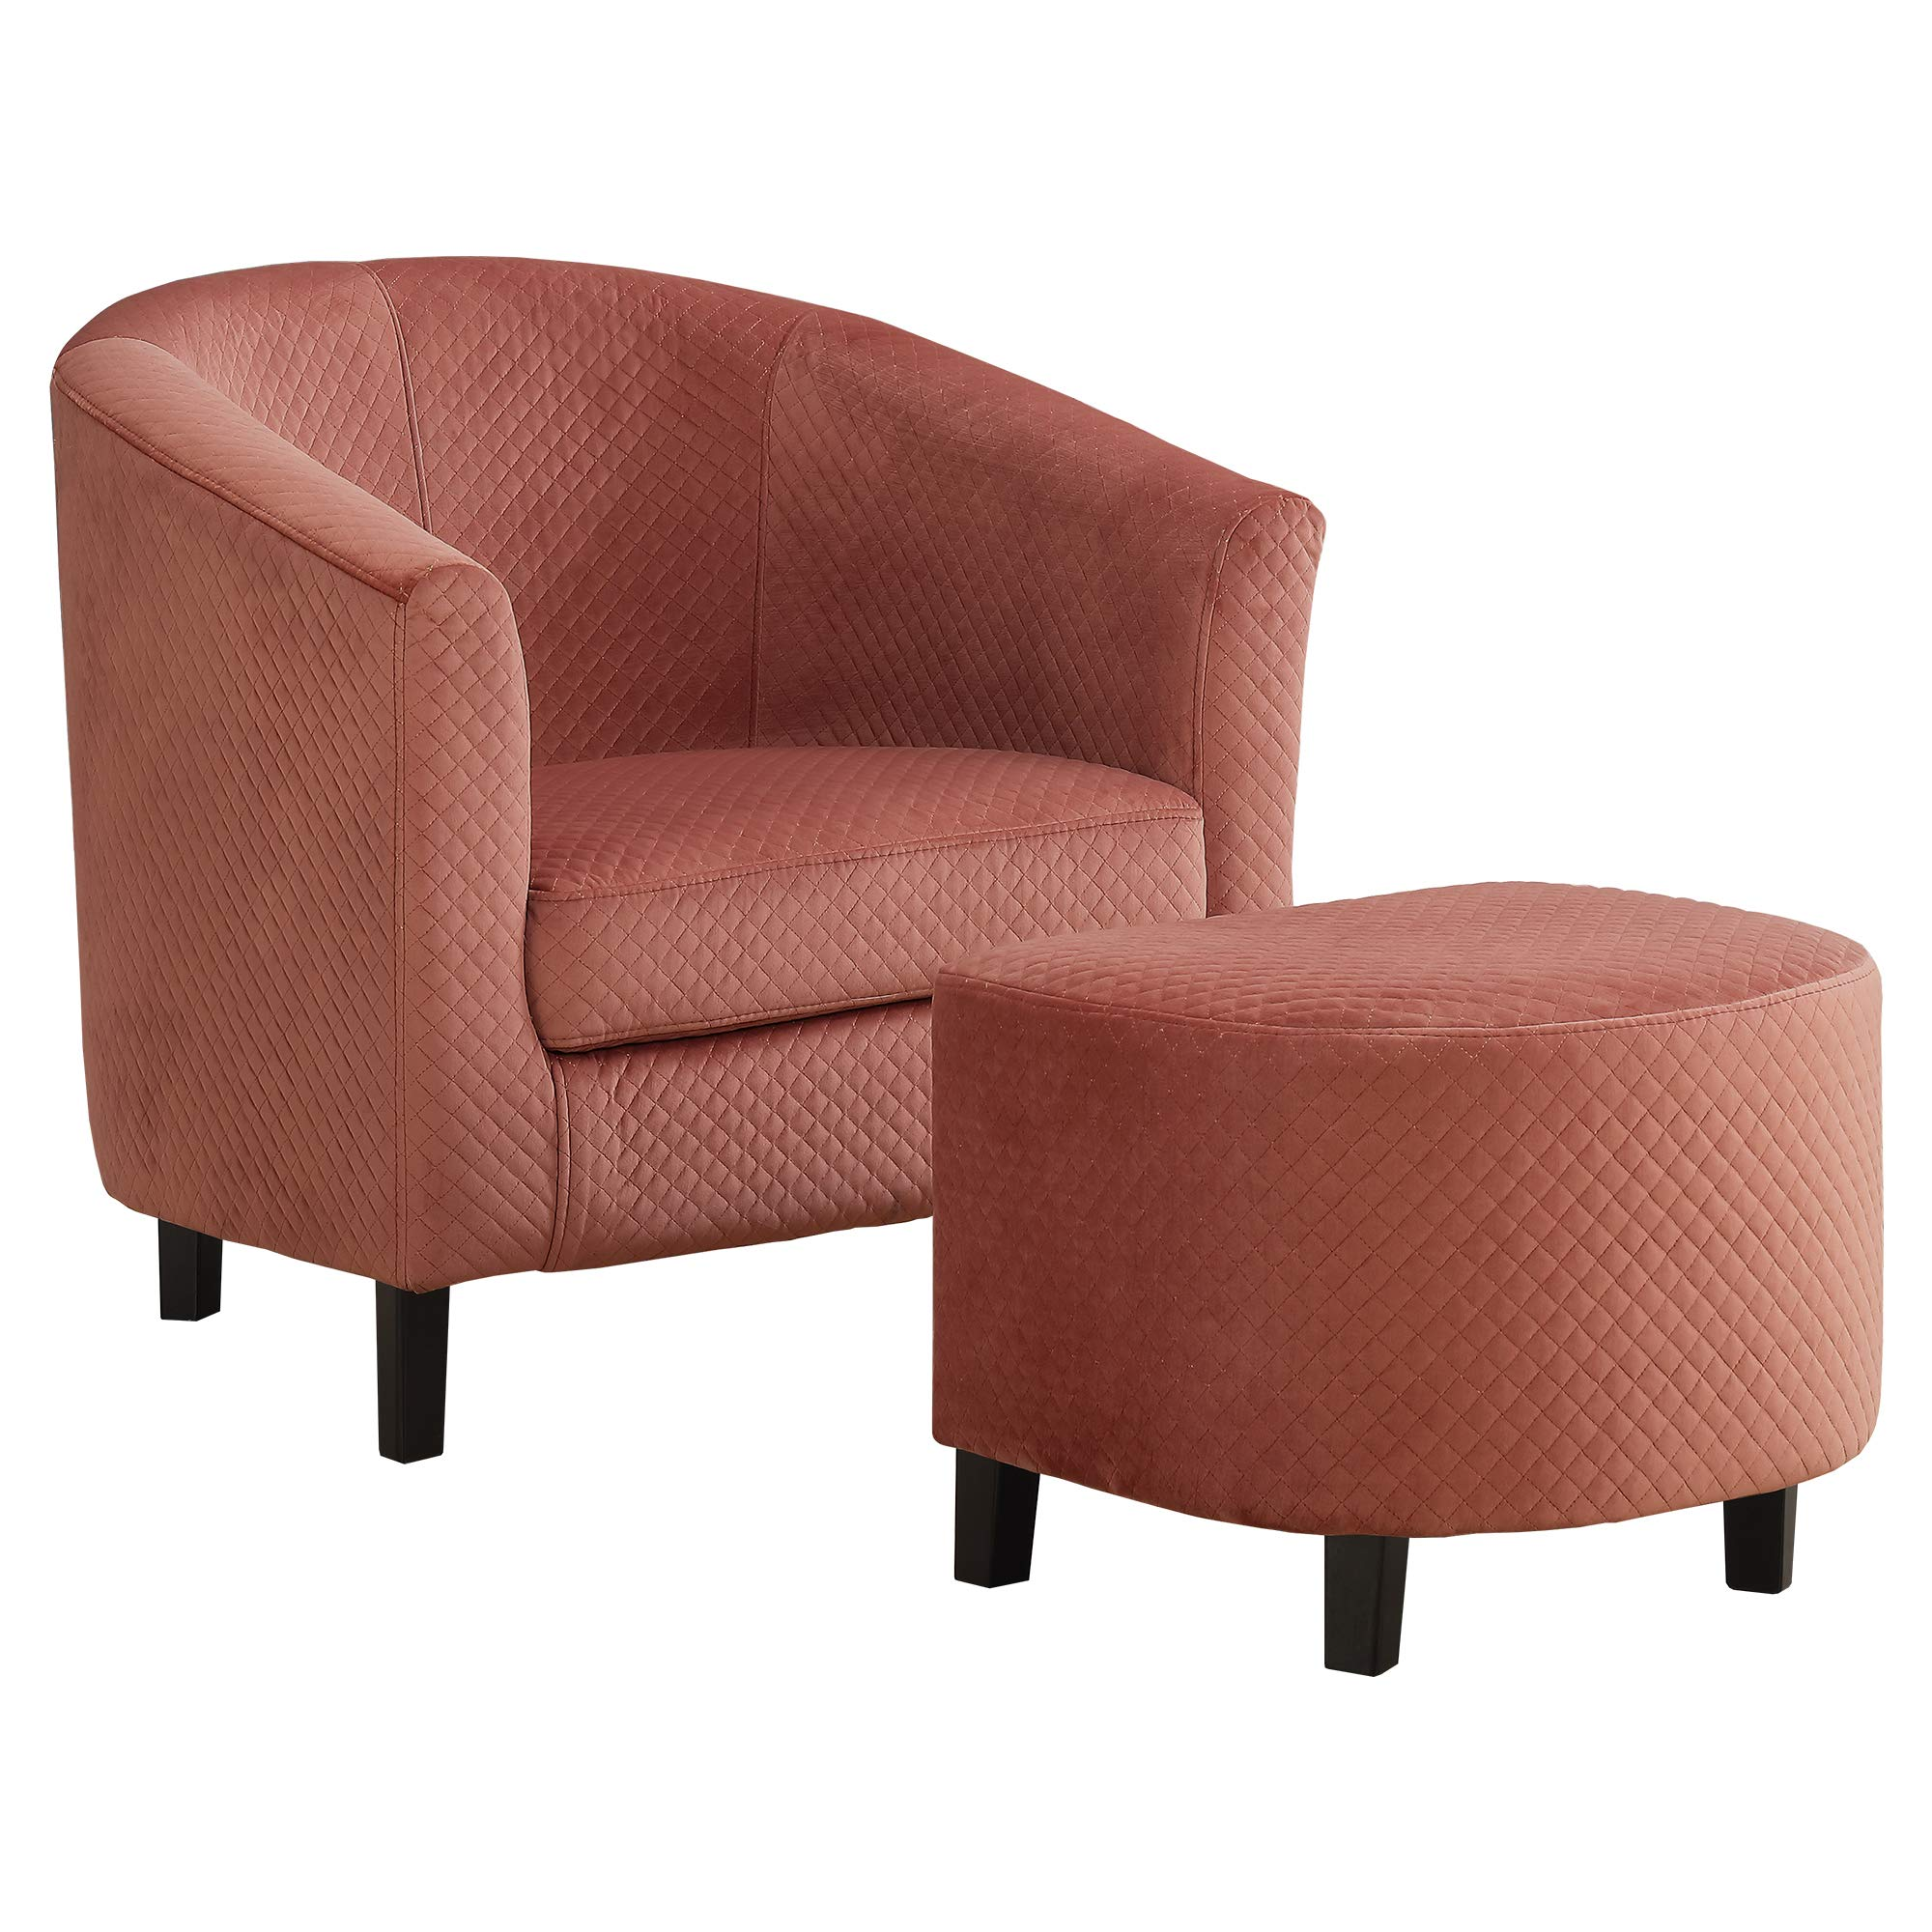 Monarch Specialties I I 8240 Accent Chair, Ottoman, Dusty Rose by Monarch Specialties